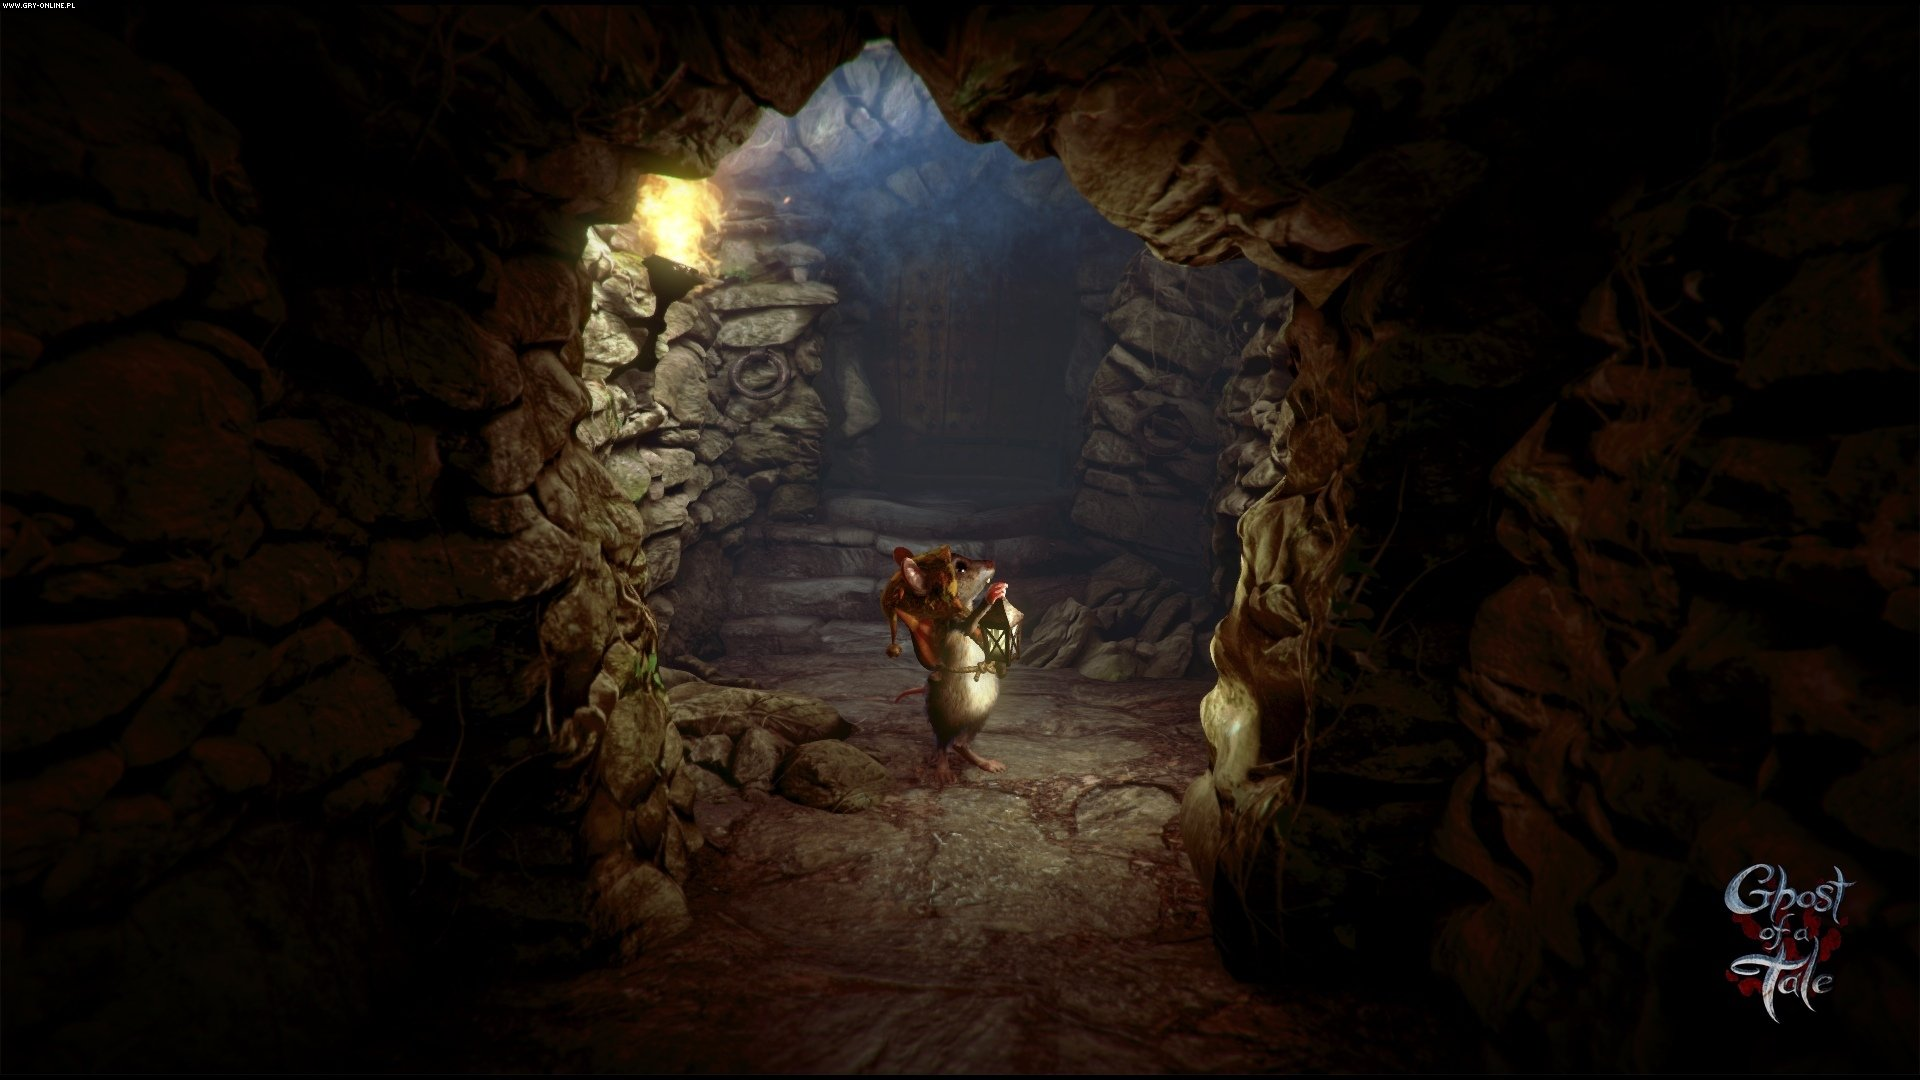 Ghost of a Tale PC Gry Screen 9/24, SeithCG